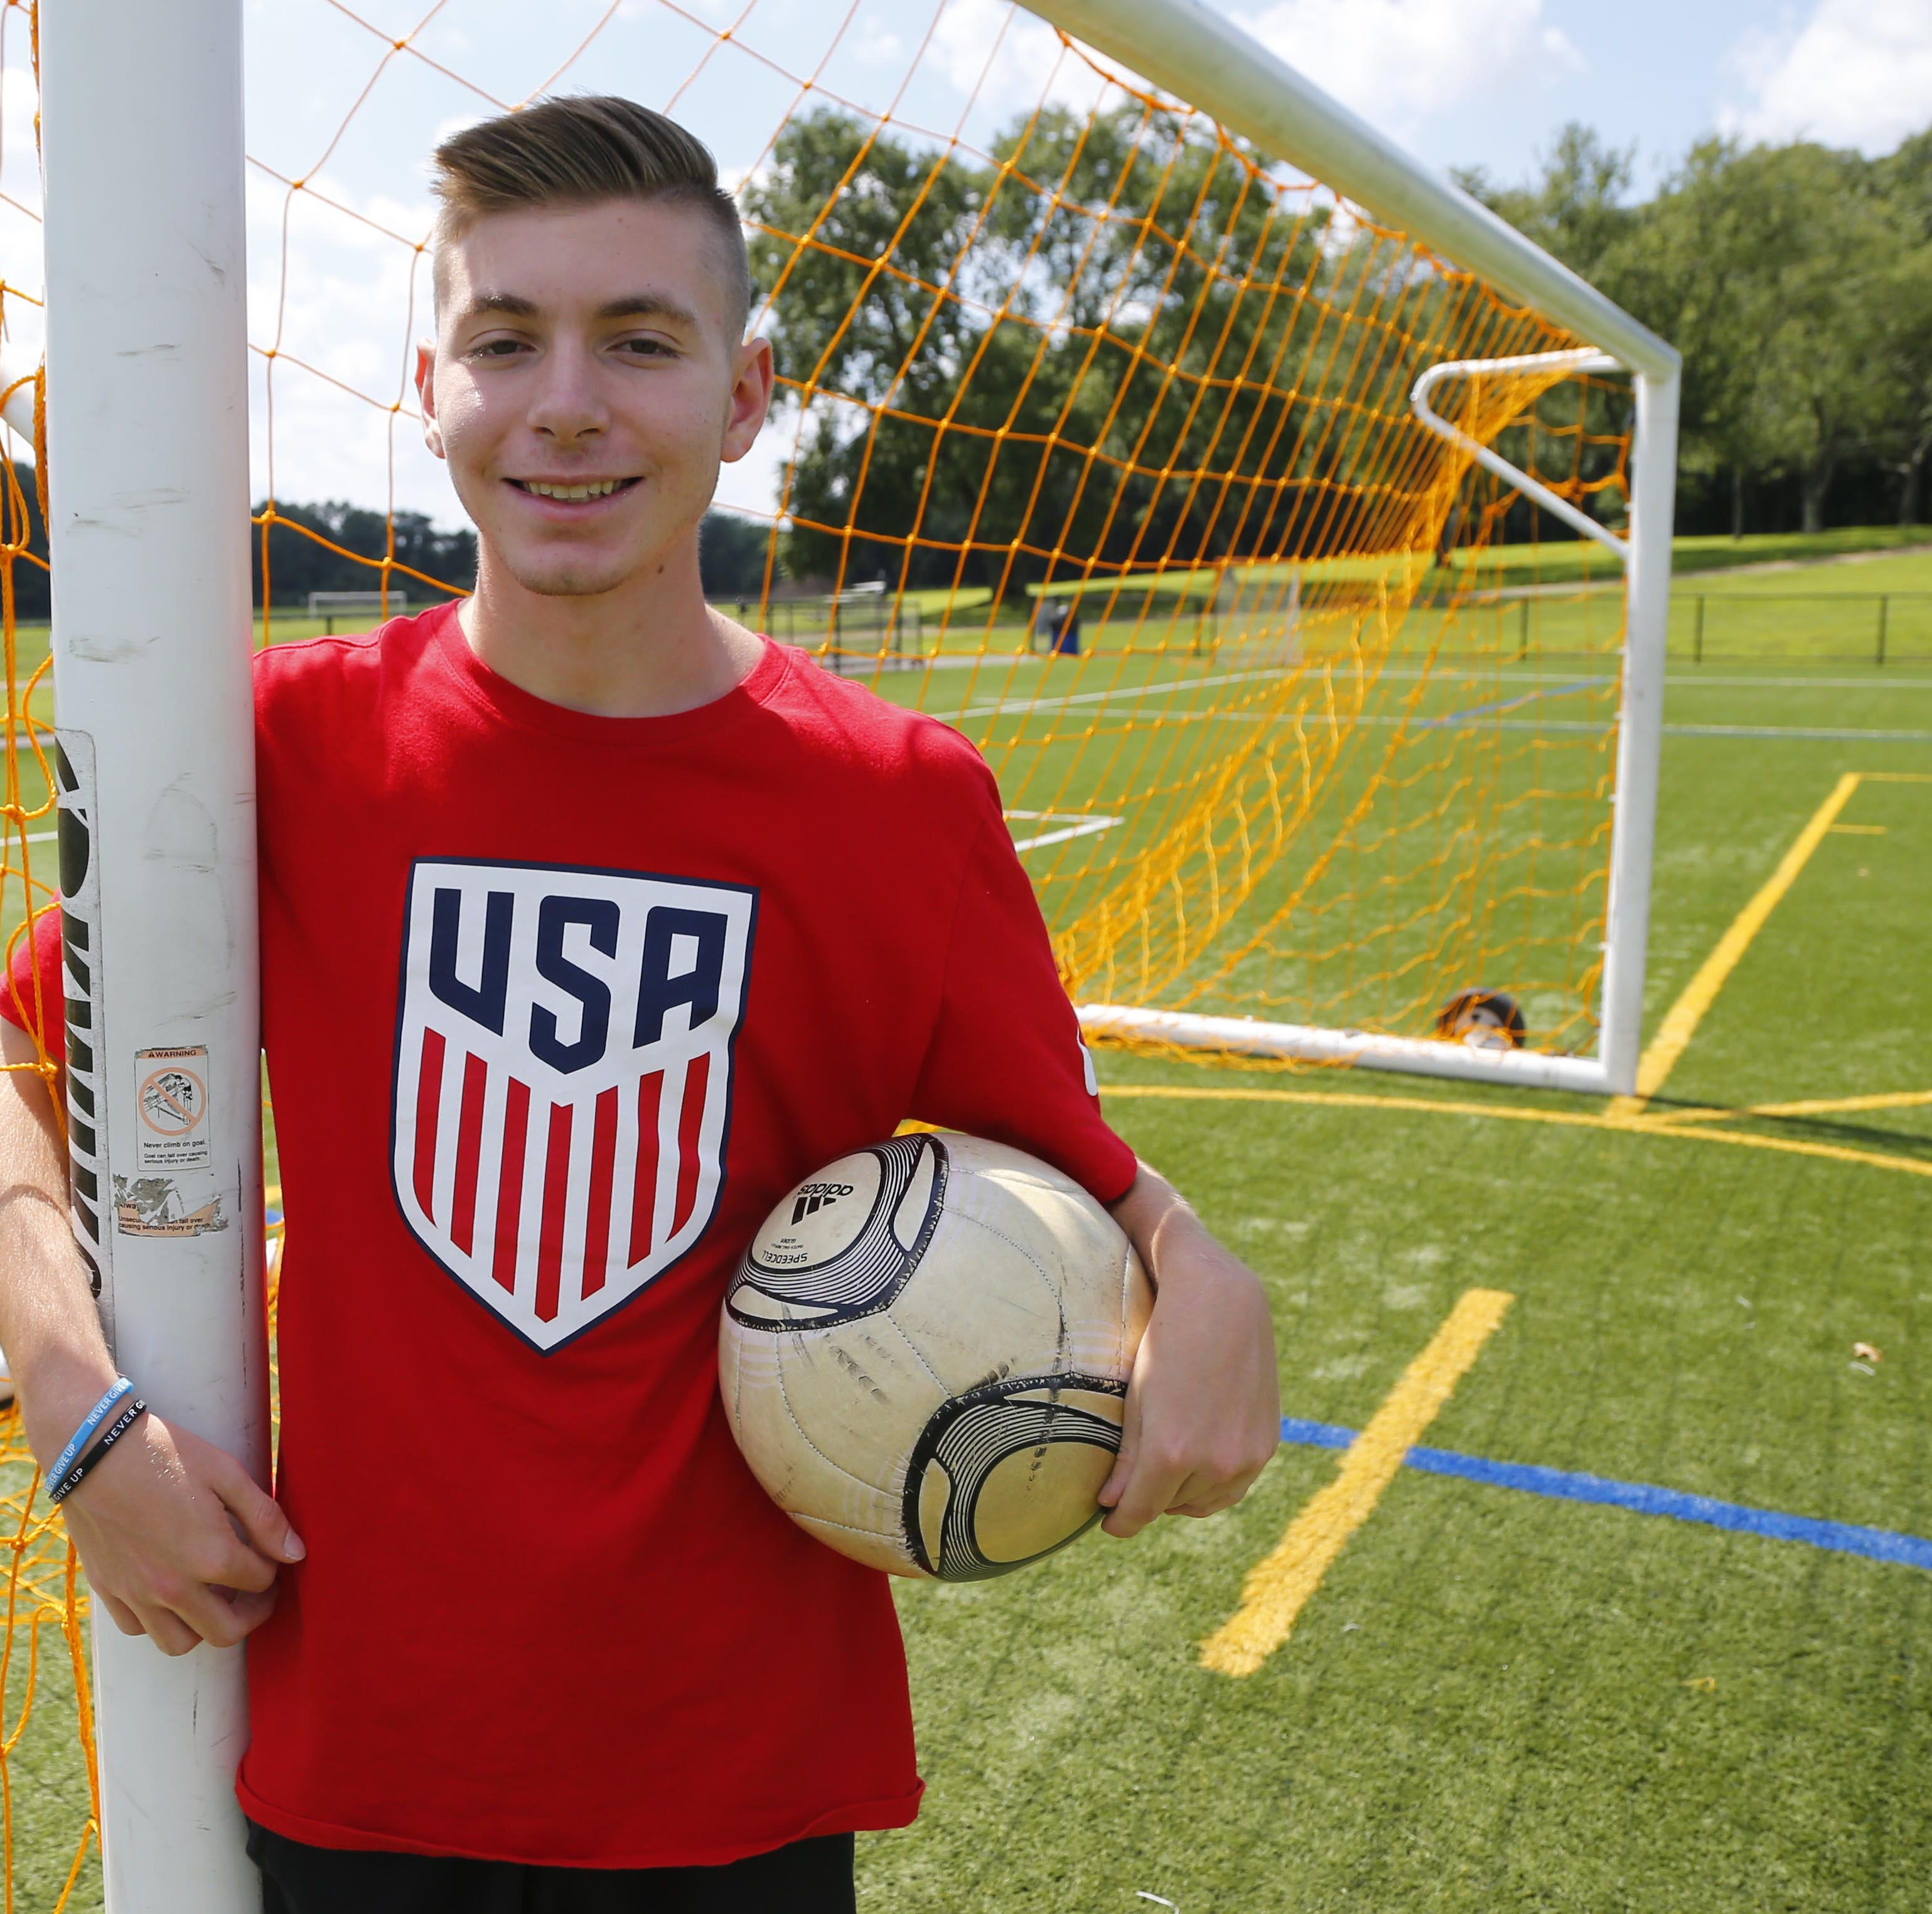 Overcoming cerebral palsy, Marlboro teen shines with U.S. Paralympic soccer team